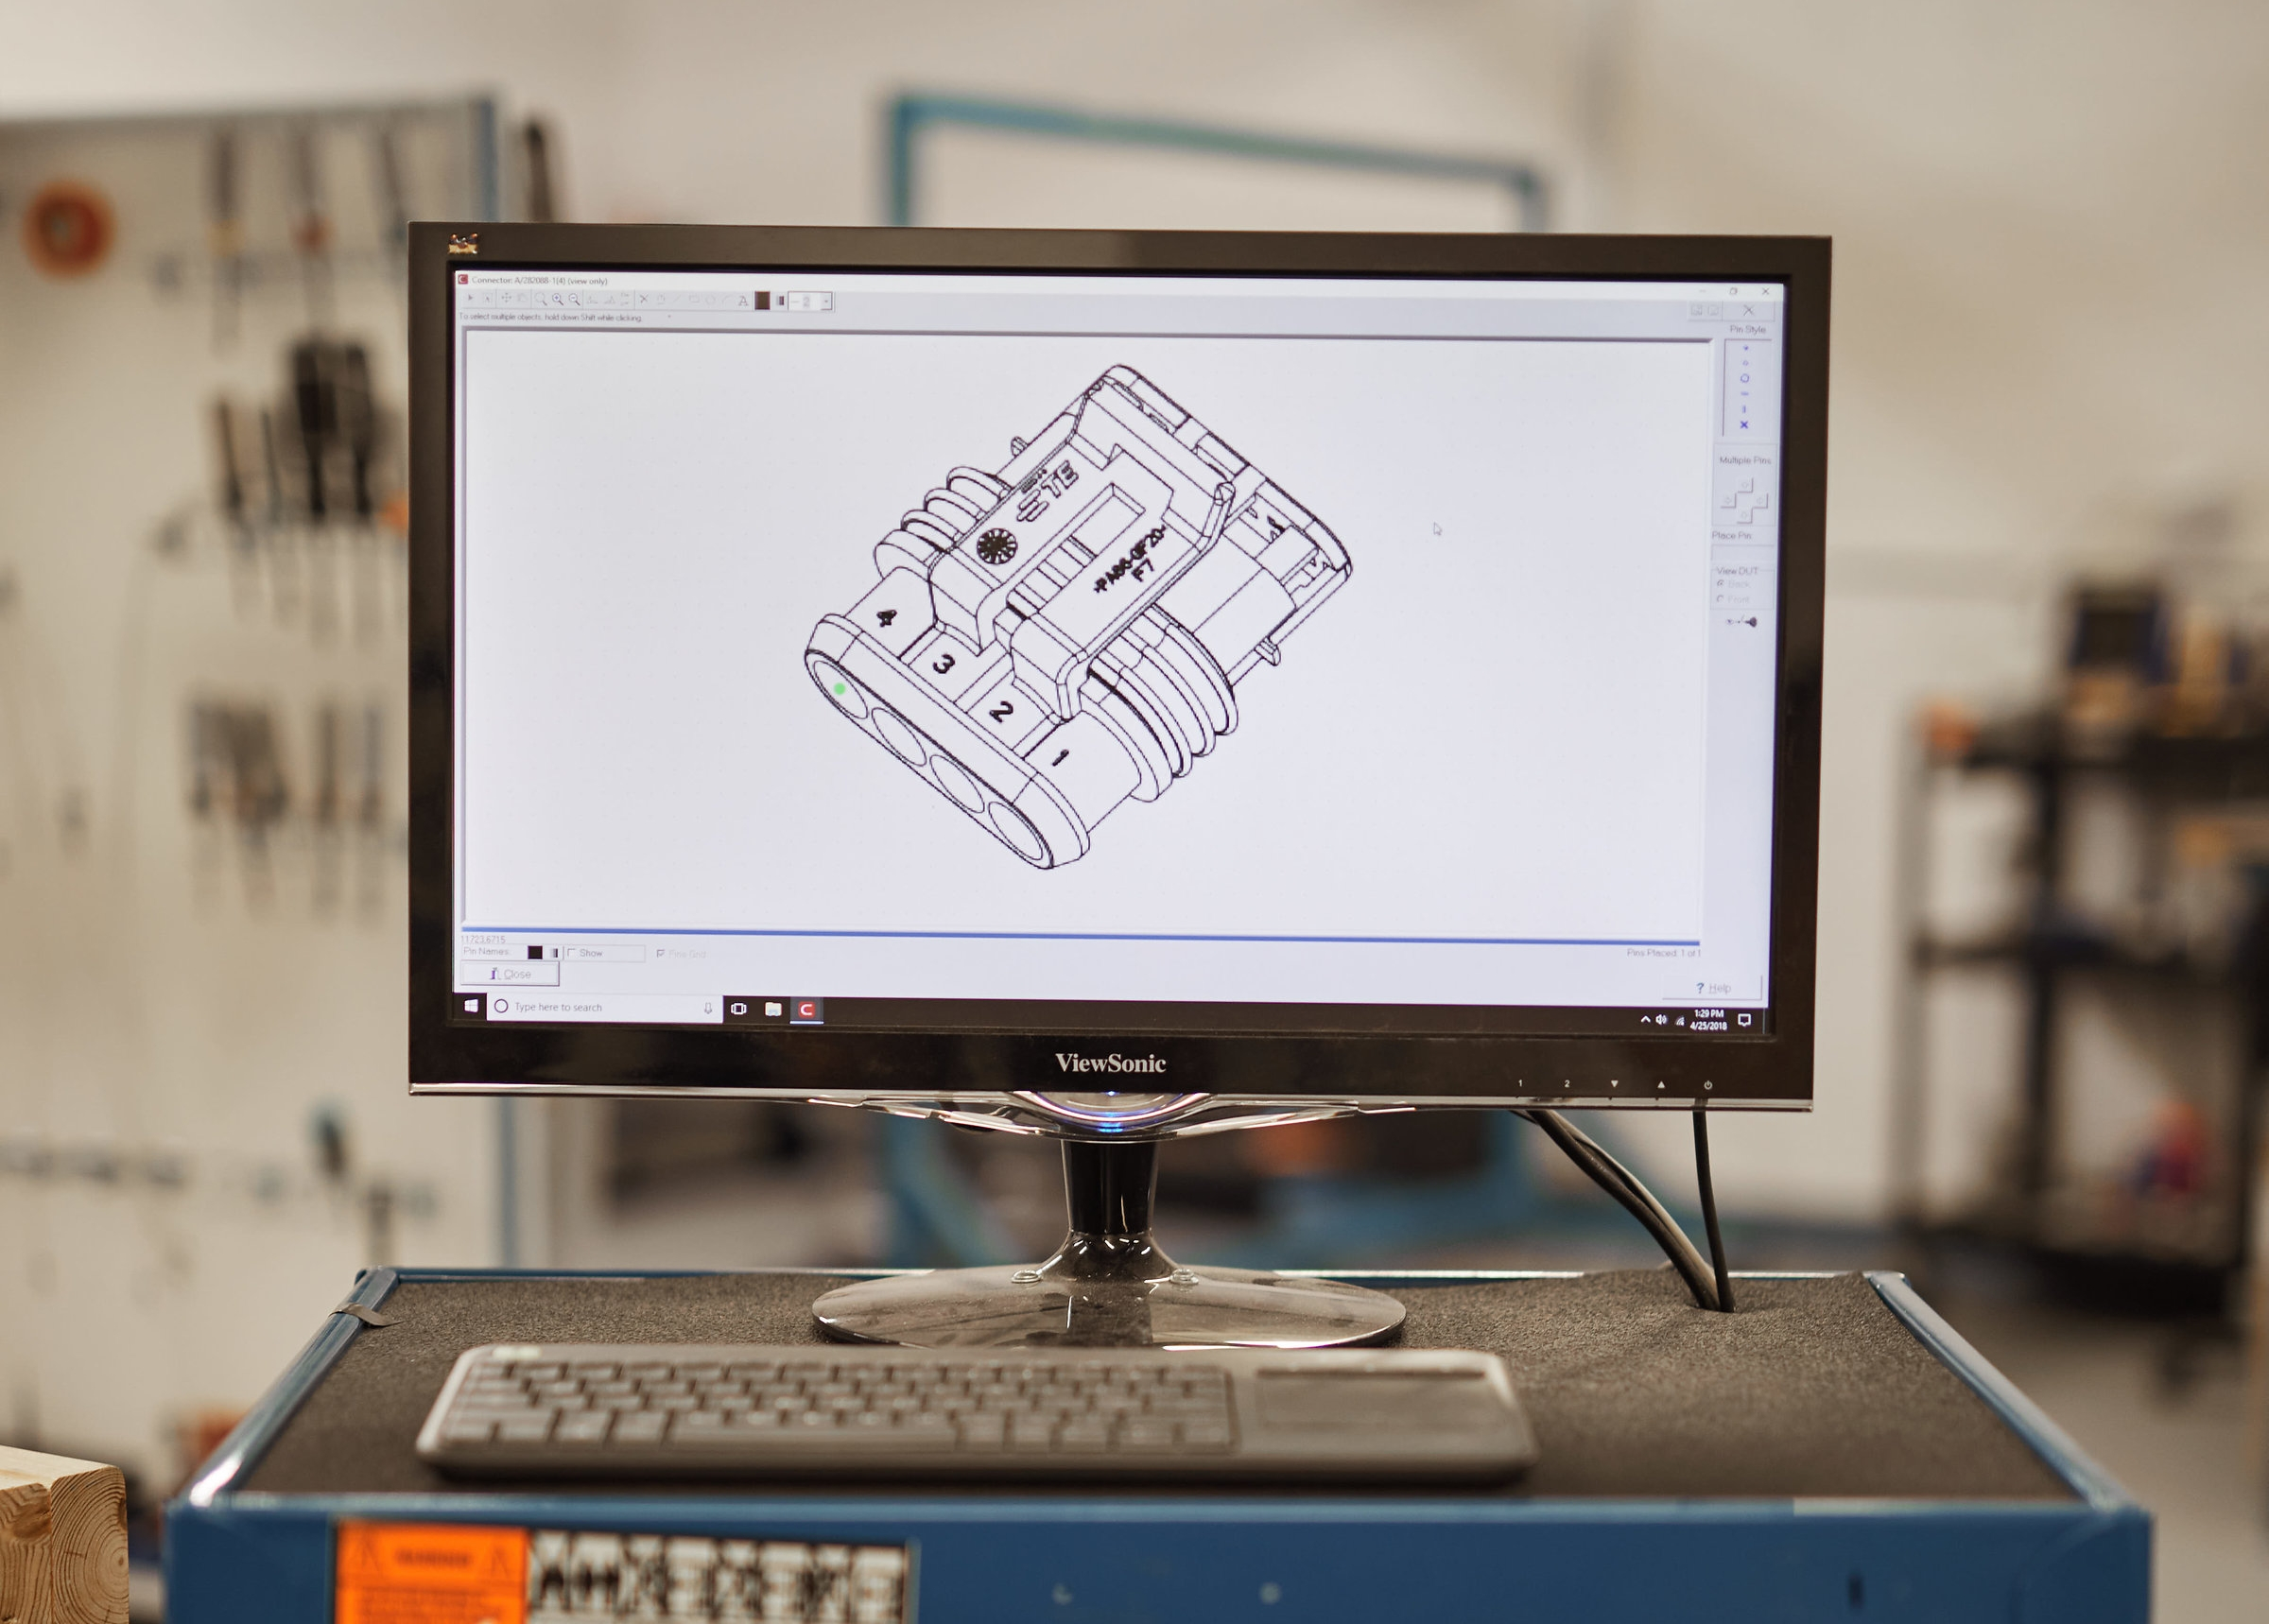 Process engineering - We pride ourselves on providing support and custom solutions from an engineering perspective from short run prototype builds, design for manufacturing, product quality and expertise.